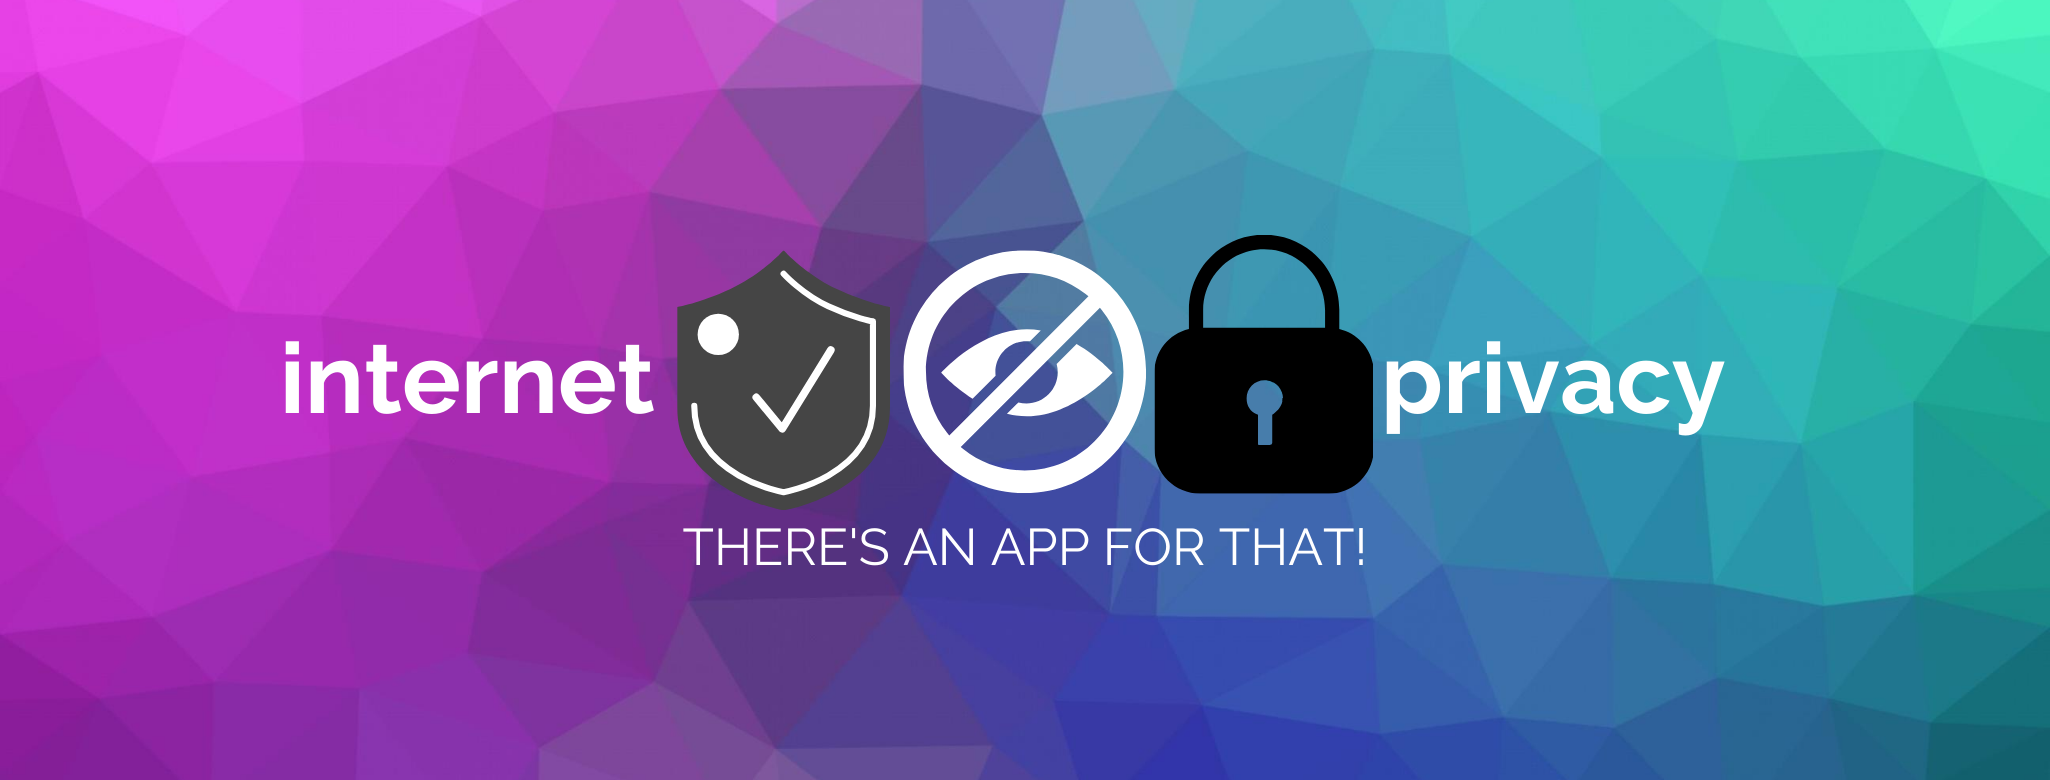 Internet Privacy – There's an App For That!